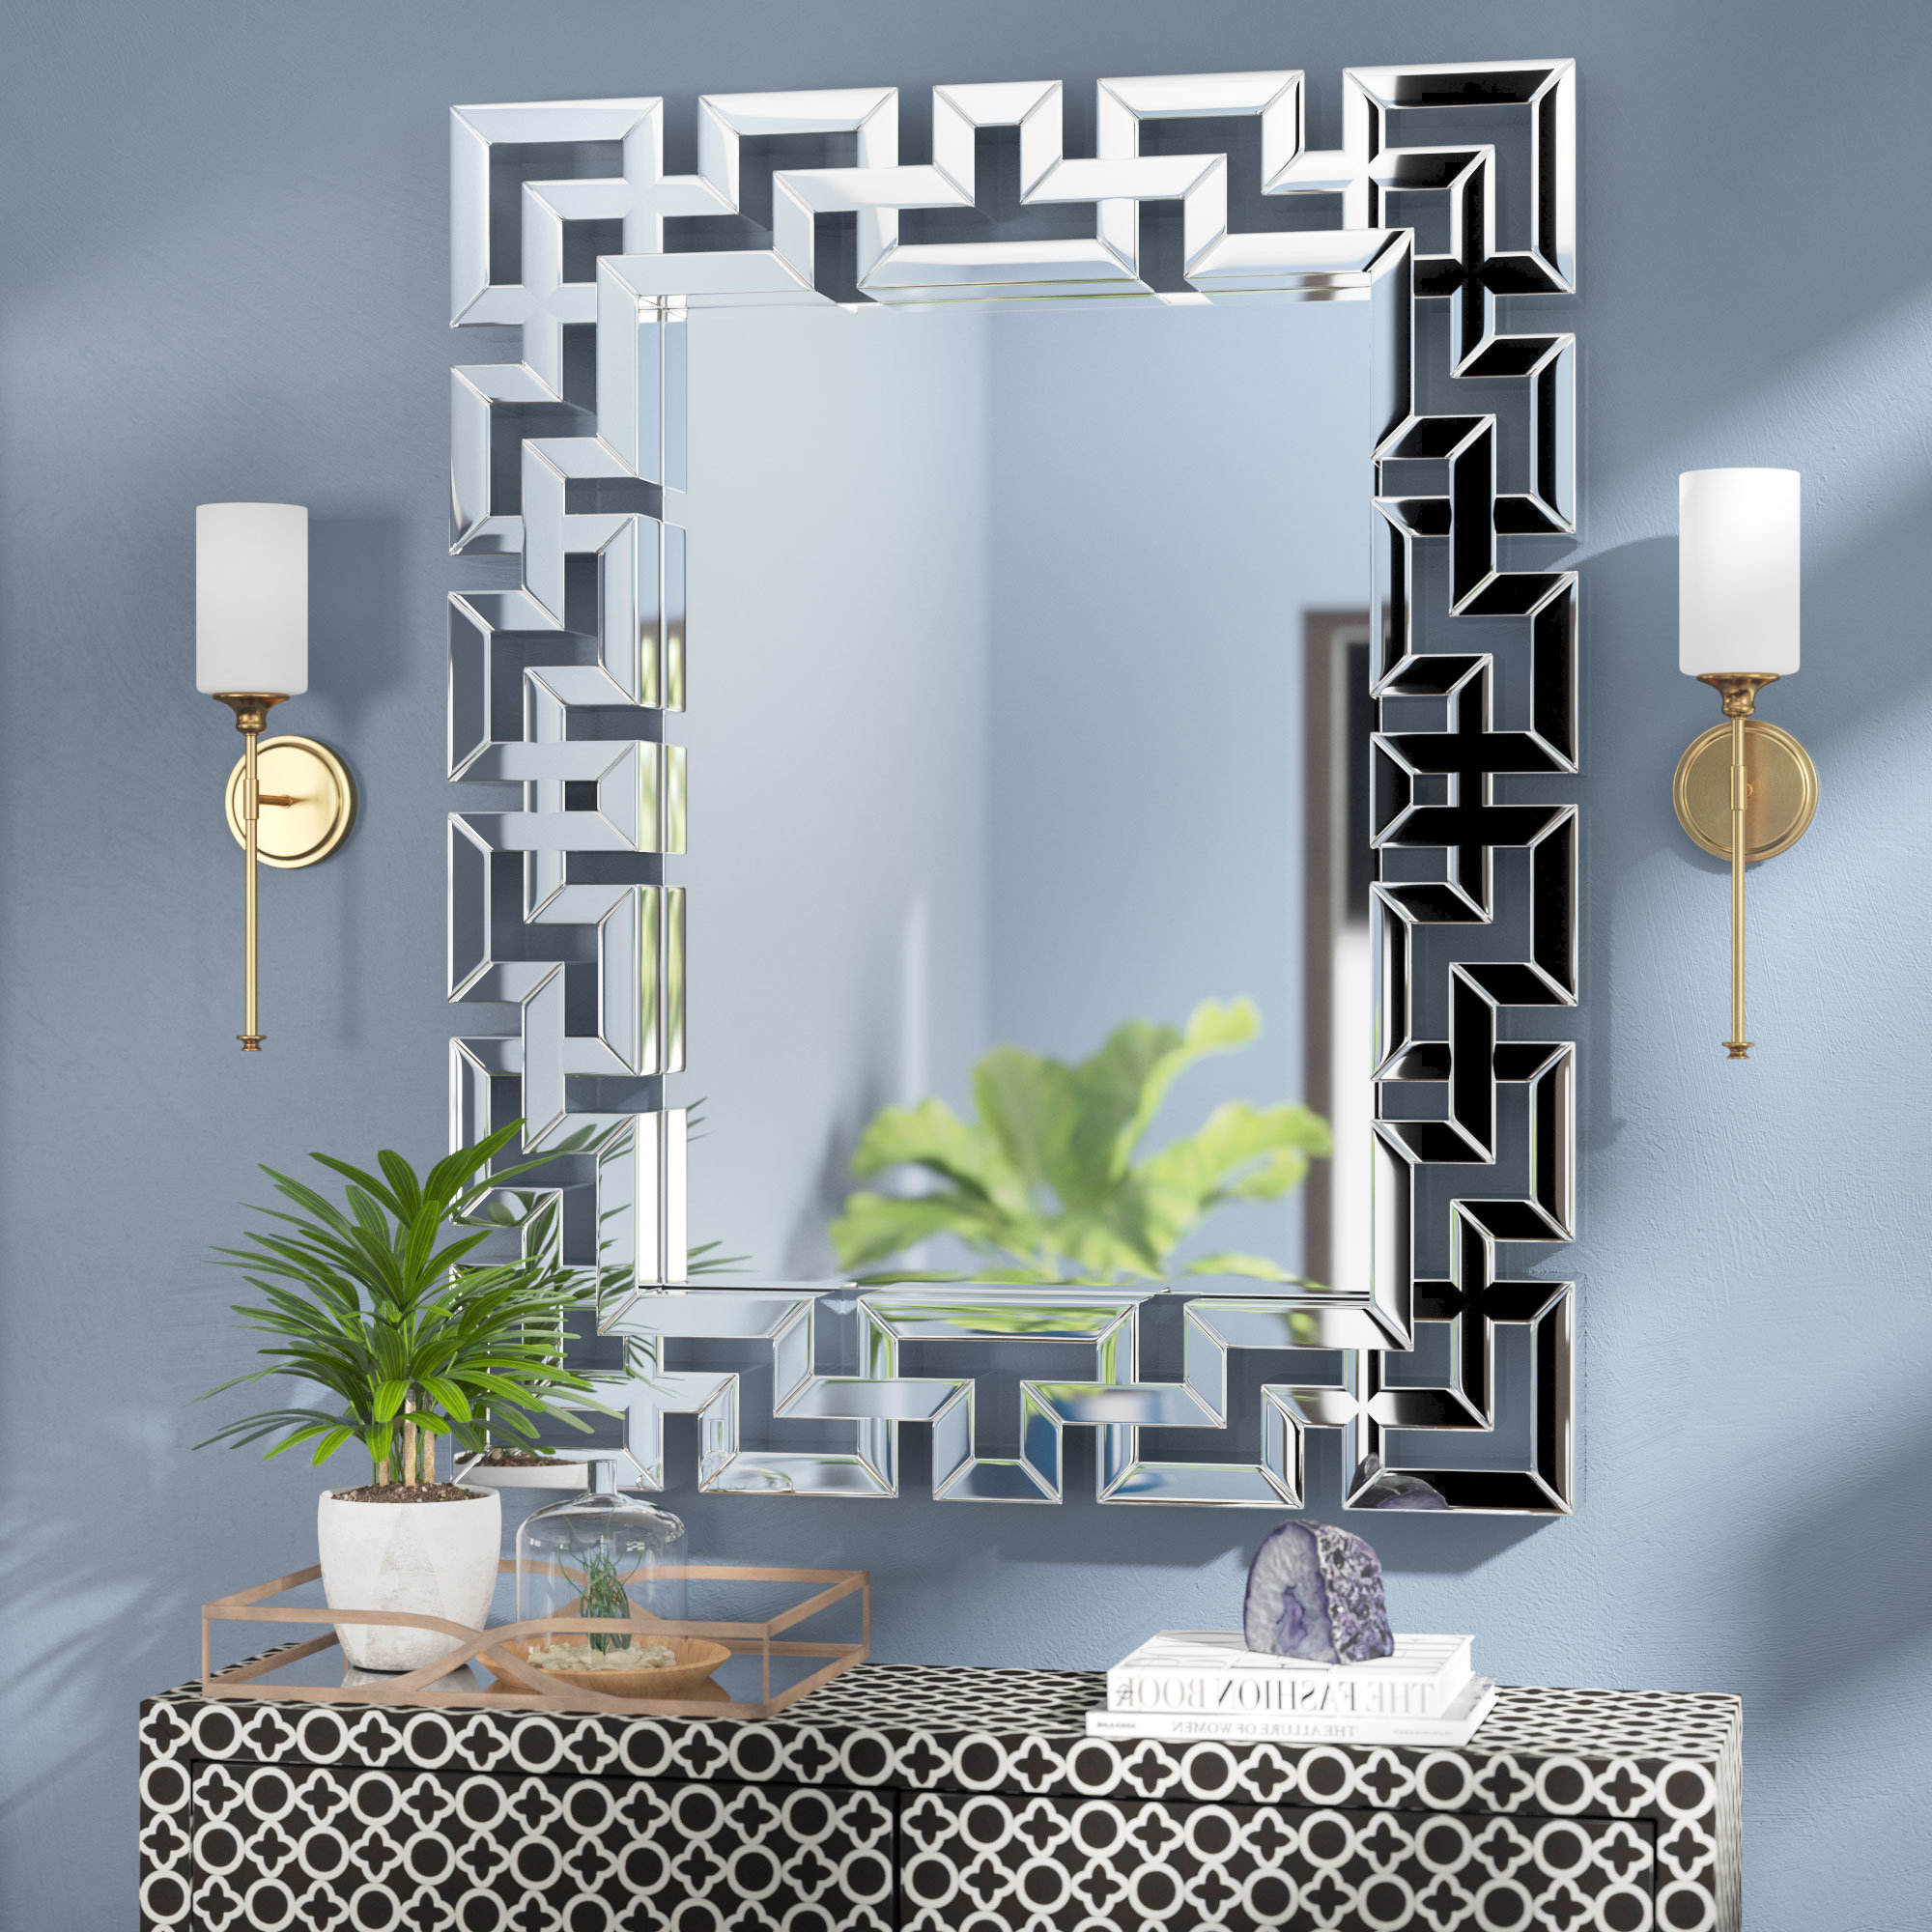 Rectangle Ornate Geometric Wall Mirror Pertaining To Latest Long Rectangular Wall Mirrors (Gallery 9 of 20)